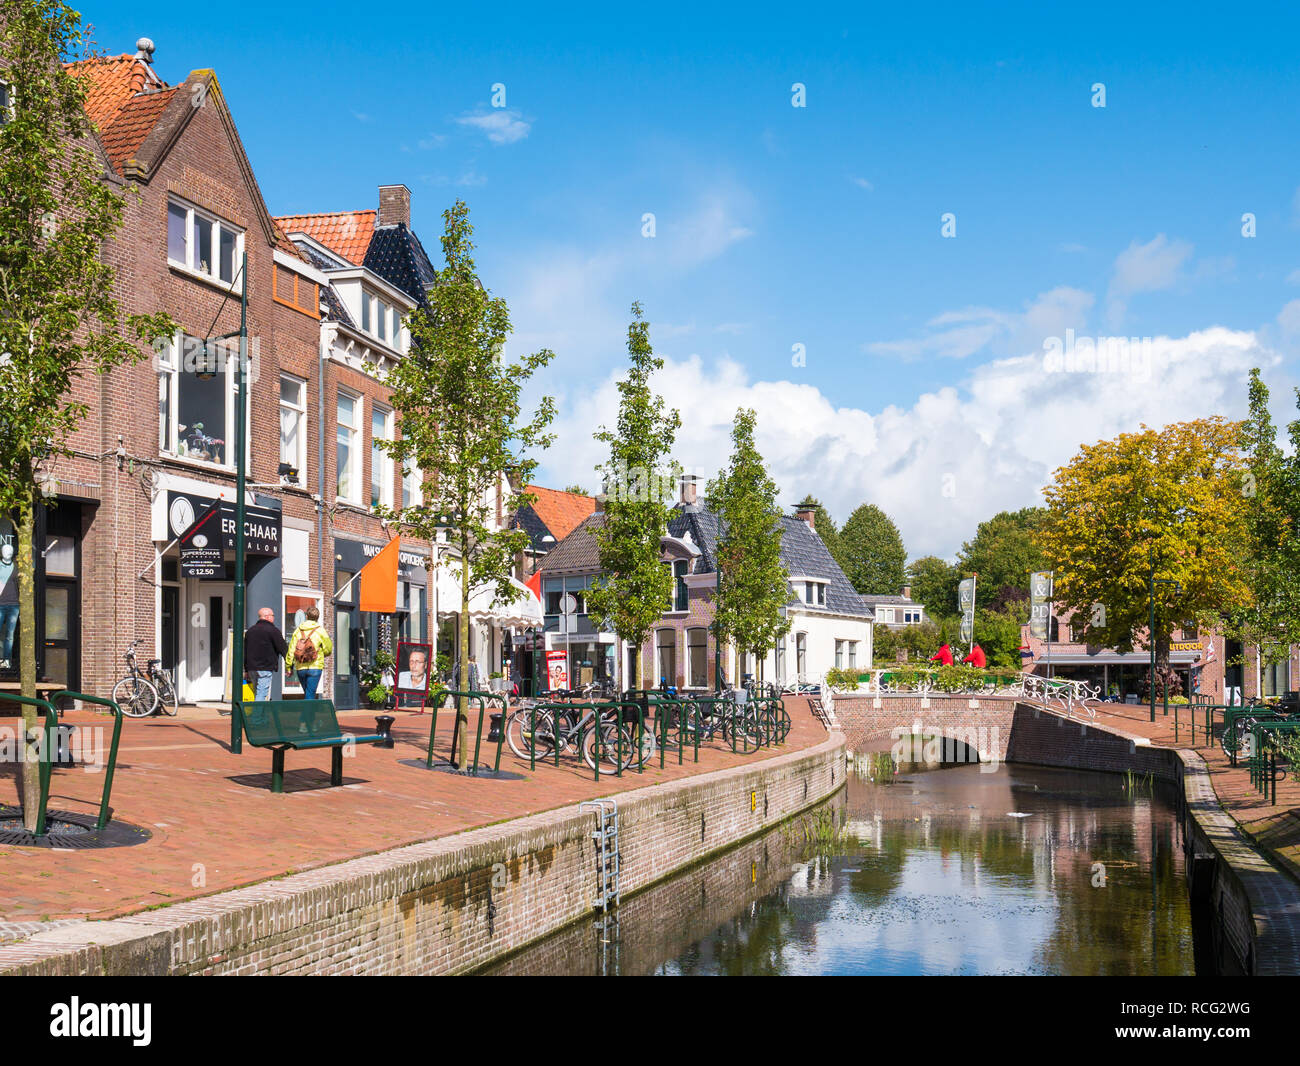 People walking on quayside with shops and canal in old town of Dokkum, Friesland, Netherlands Stock Photo